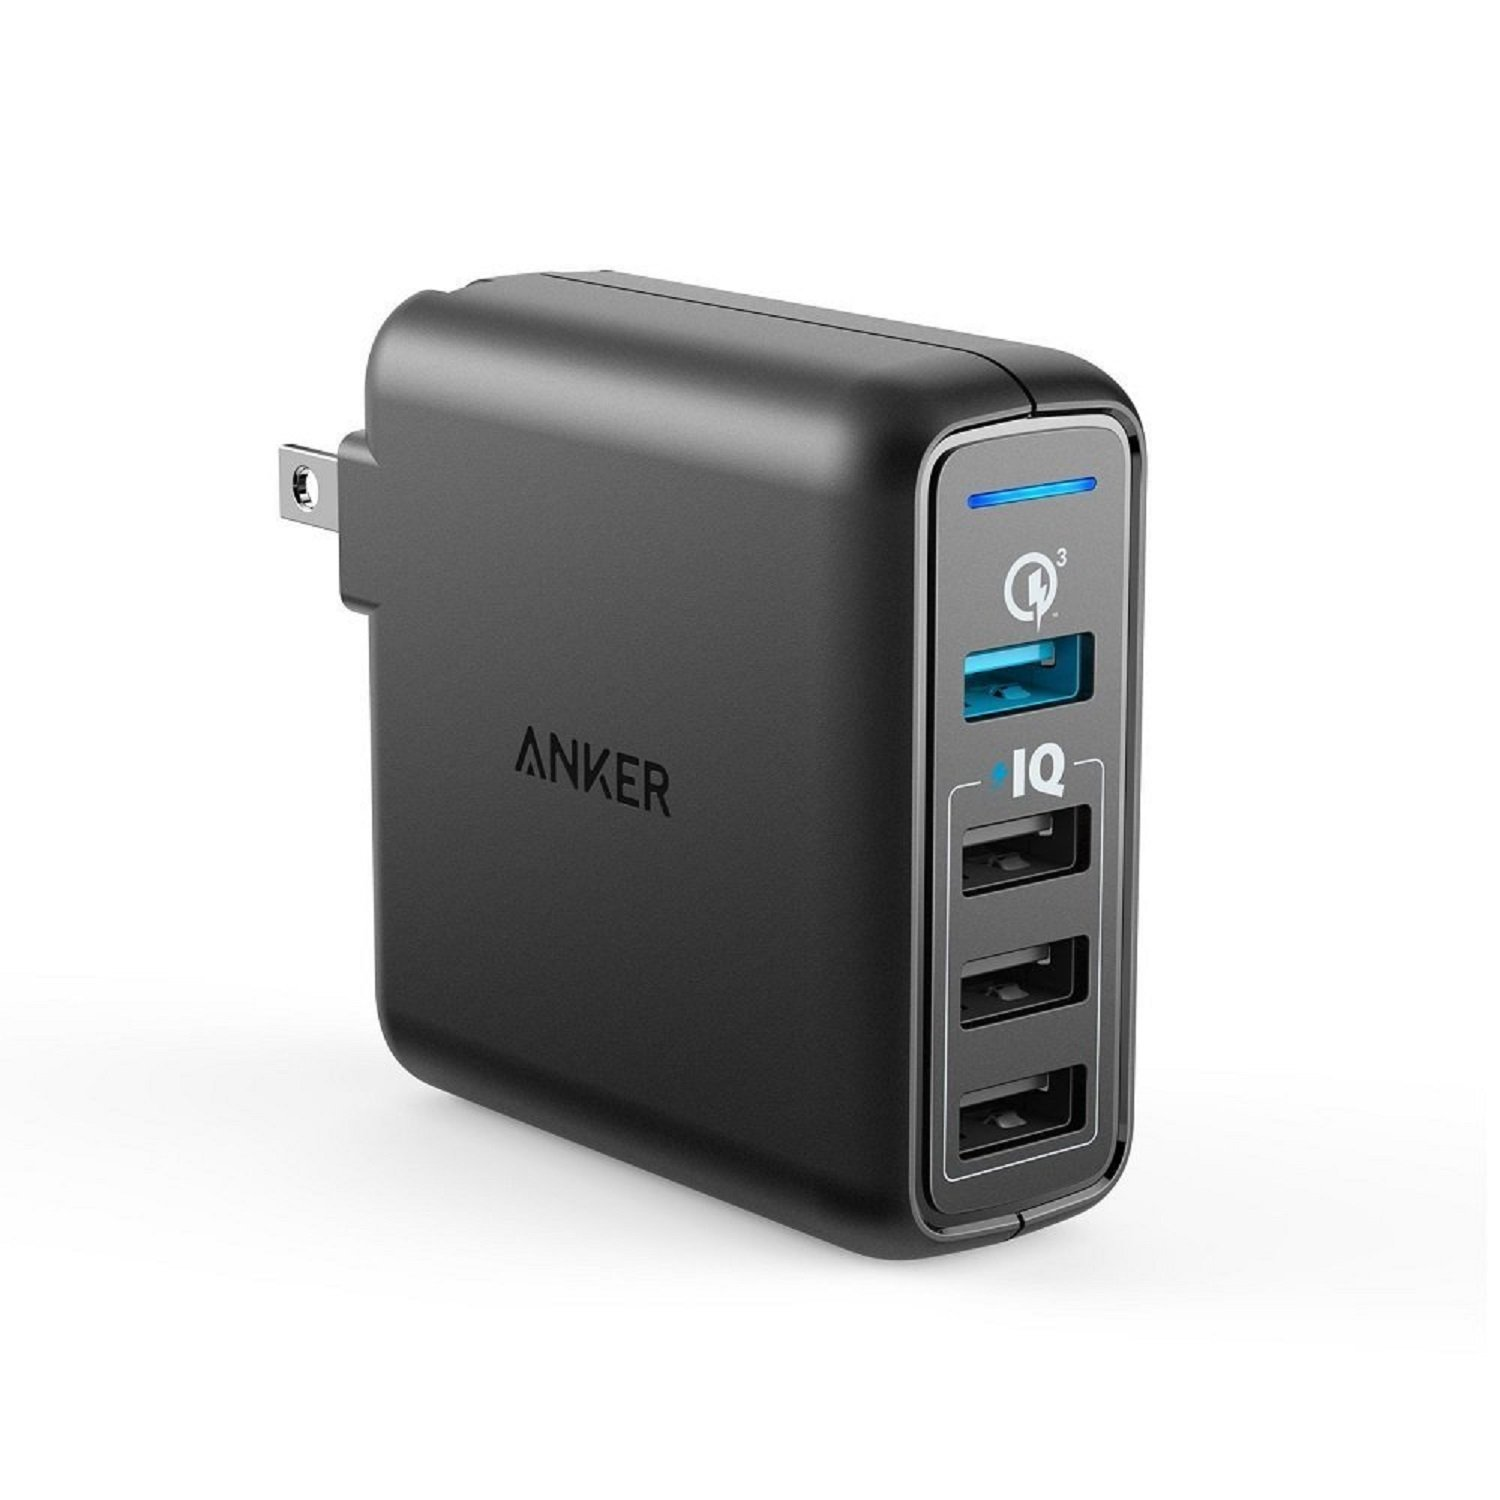 Anker PowerPort Speed 4 (QC3.0搭載 4ポート 43.5W USB急速充電器) iPhone, iPad, Galaxy S9, Xperia XZ1,その他Android各種対応